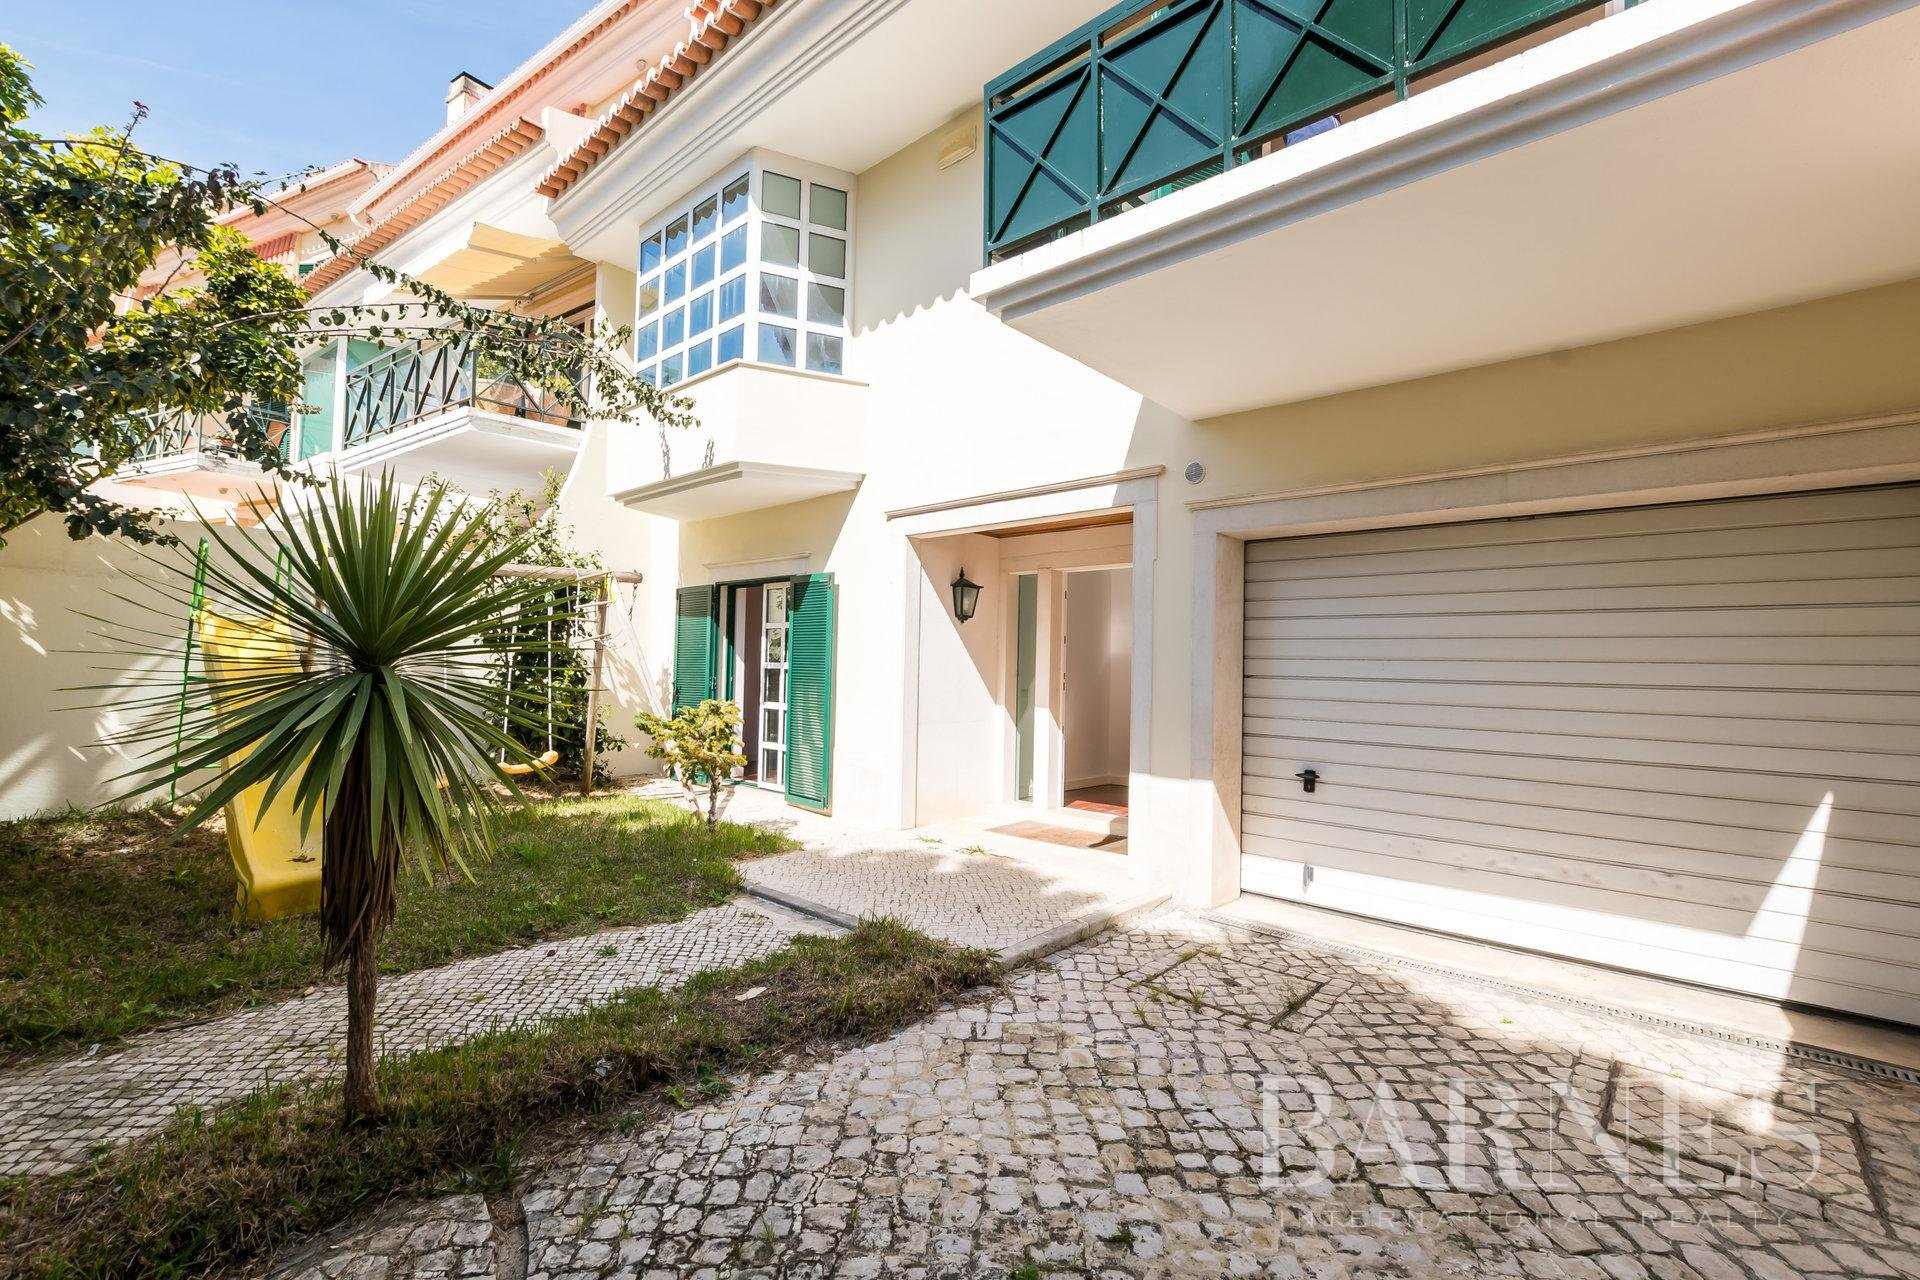 5 Bedroom Townhouse in Caxias